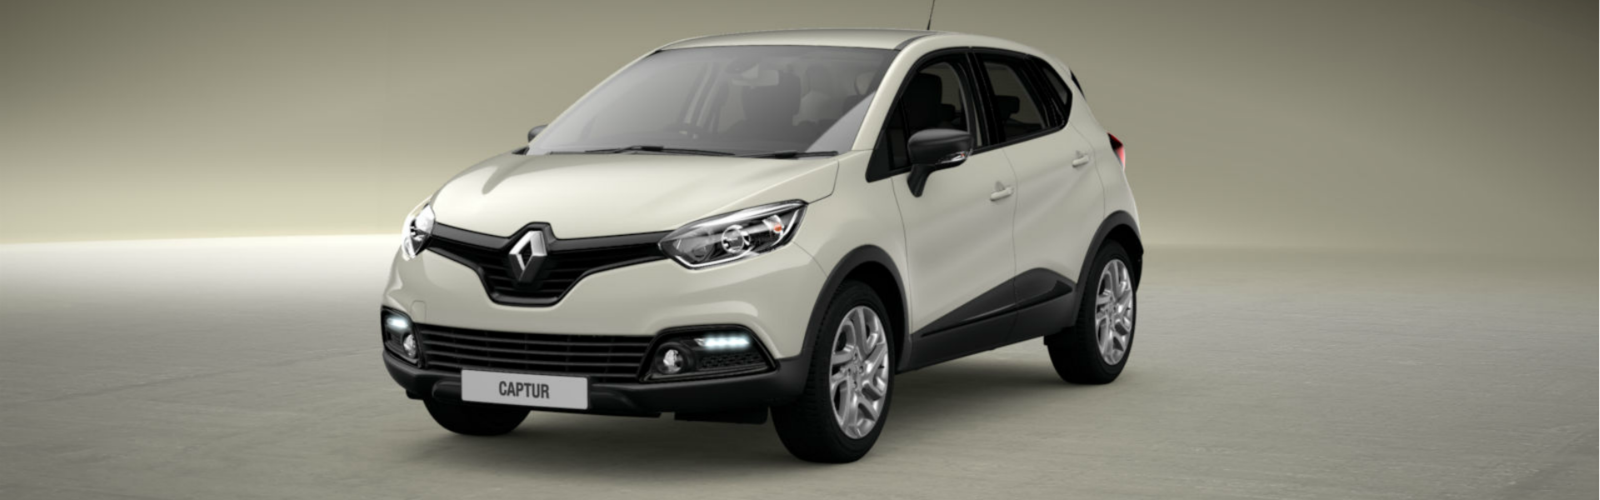 renault captur colours guide and paint prices carwow. Black Bedroom Furniture Sets. Home Design Ideas